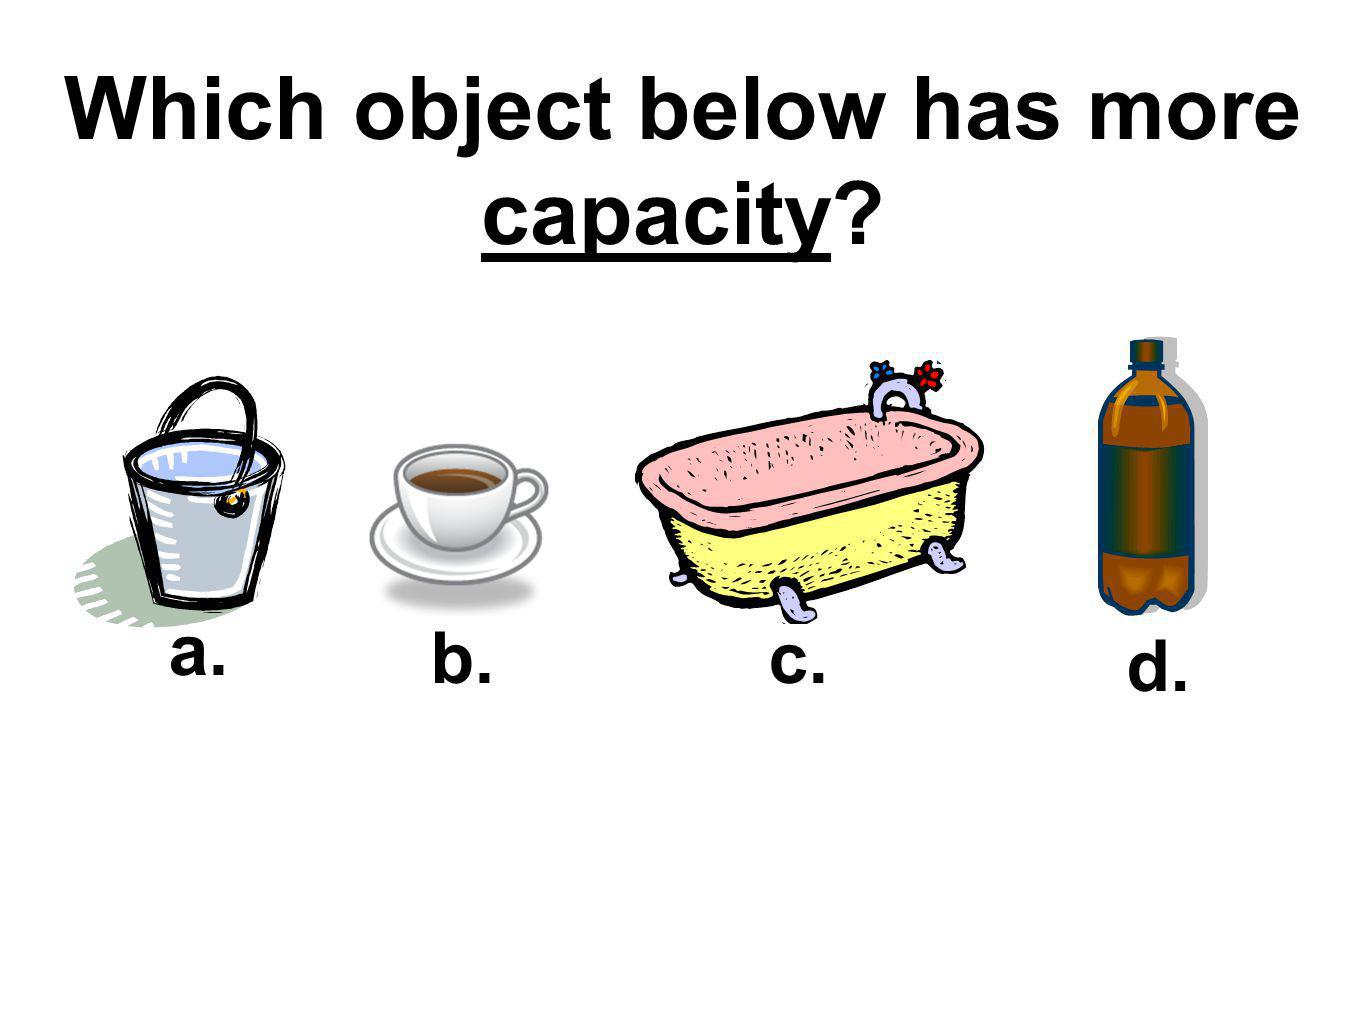 Which object below has more capacity